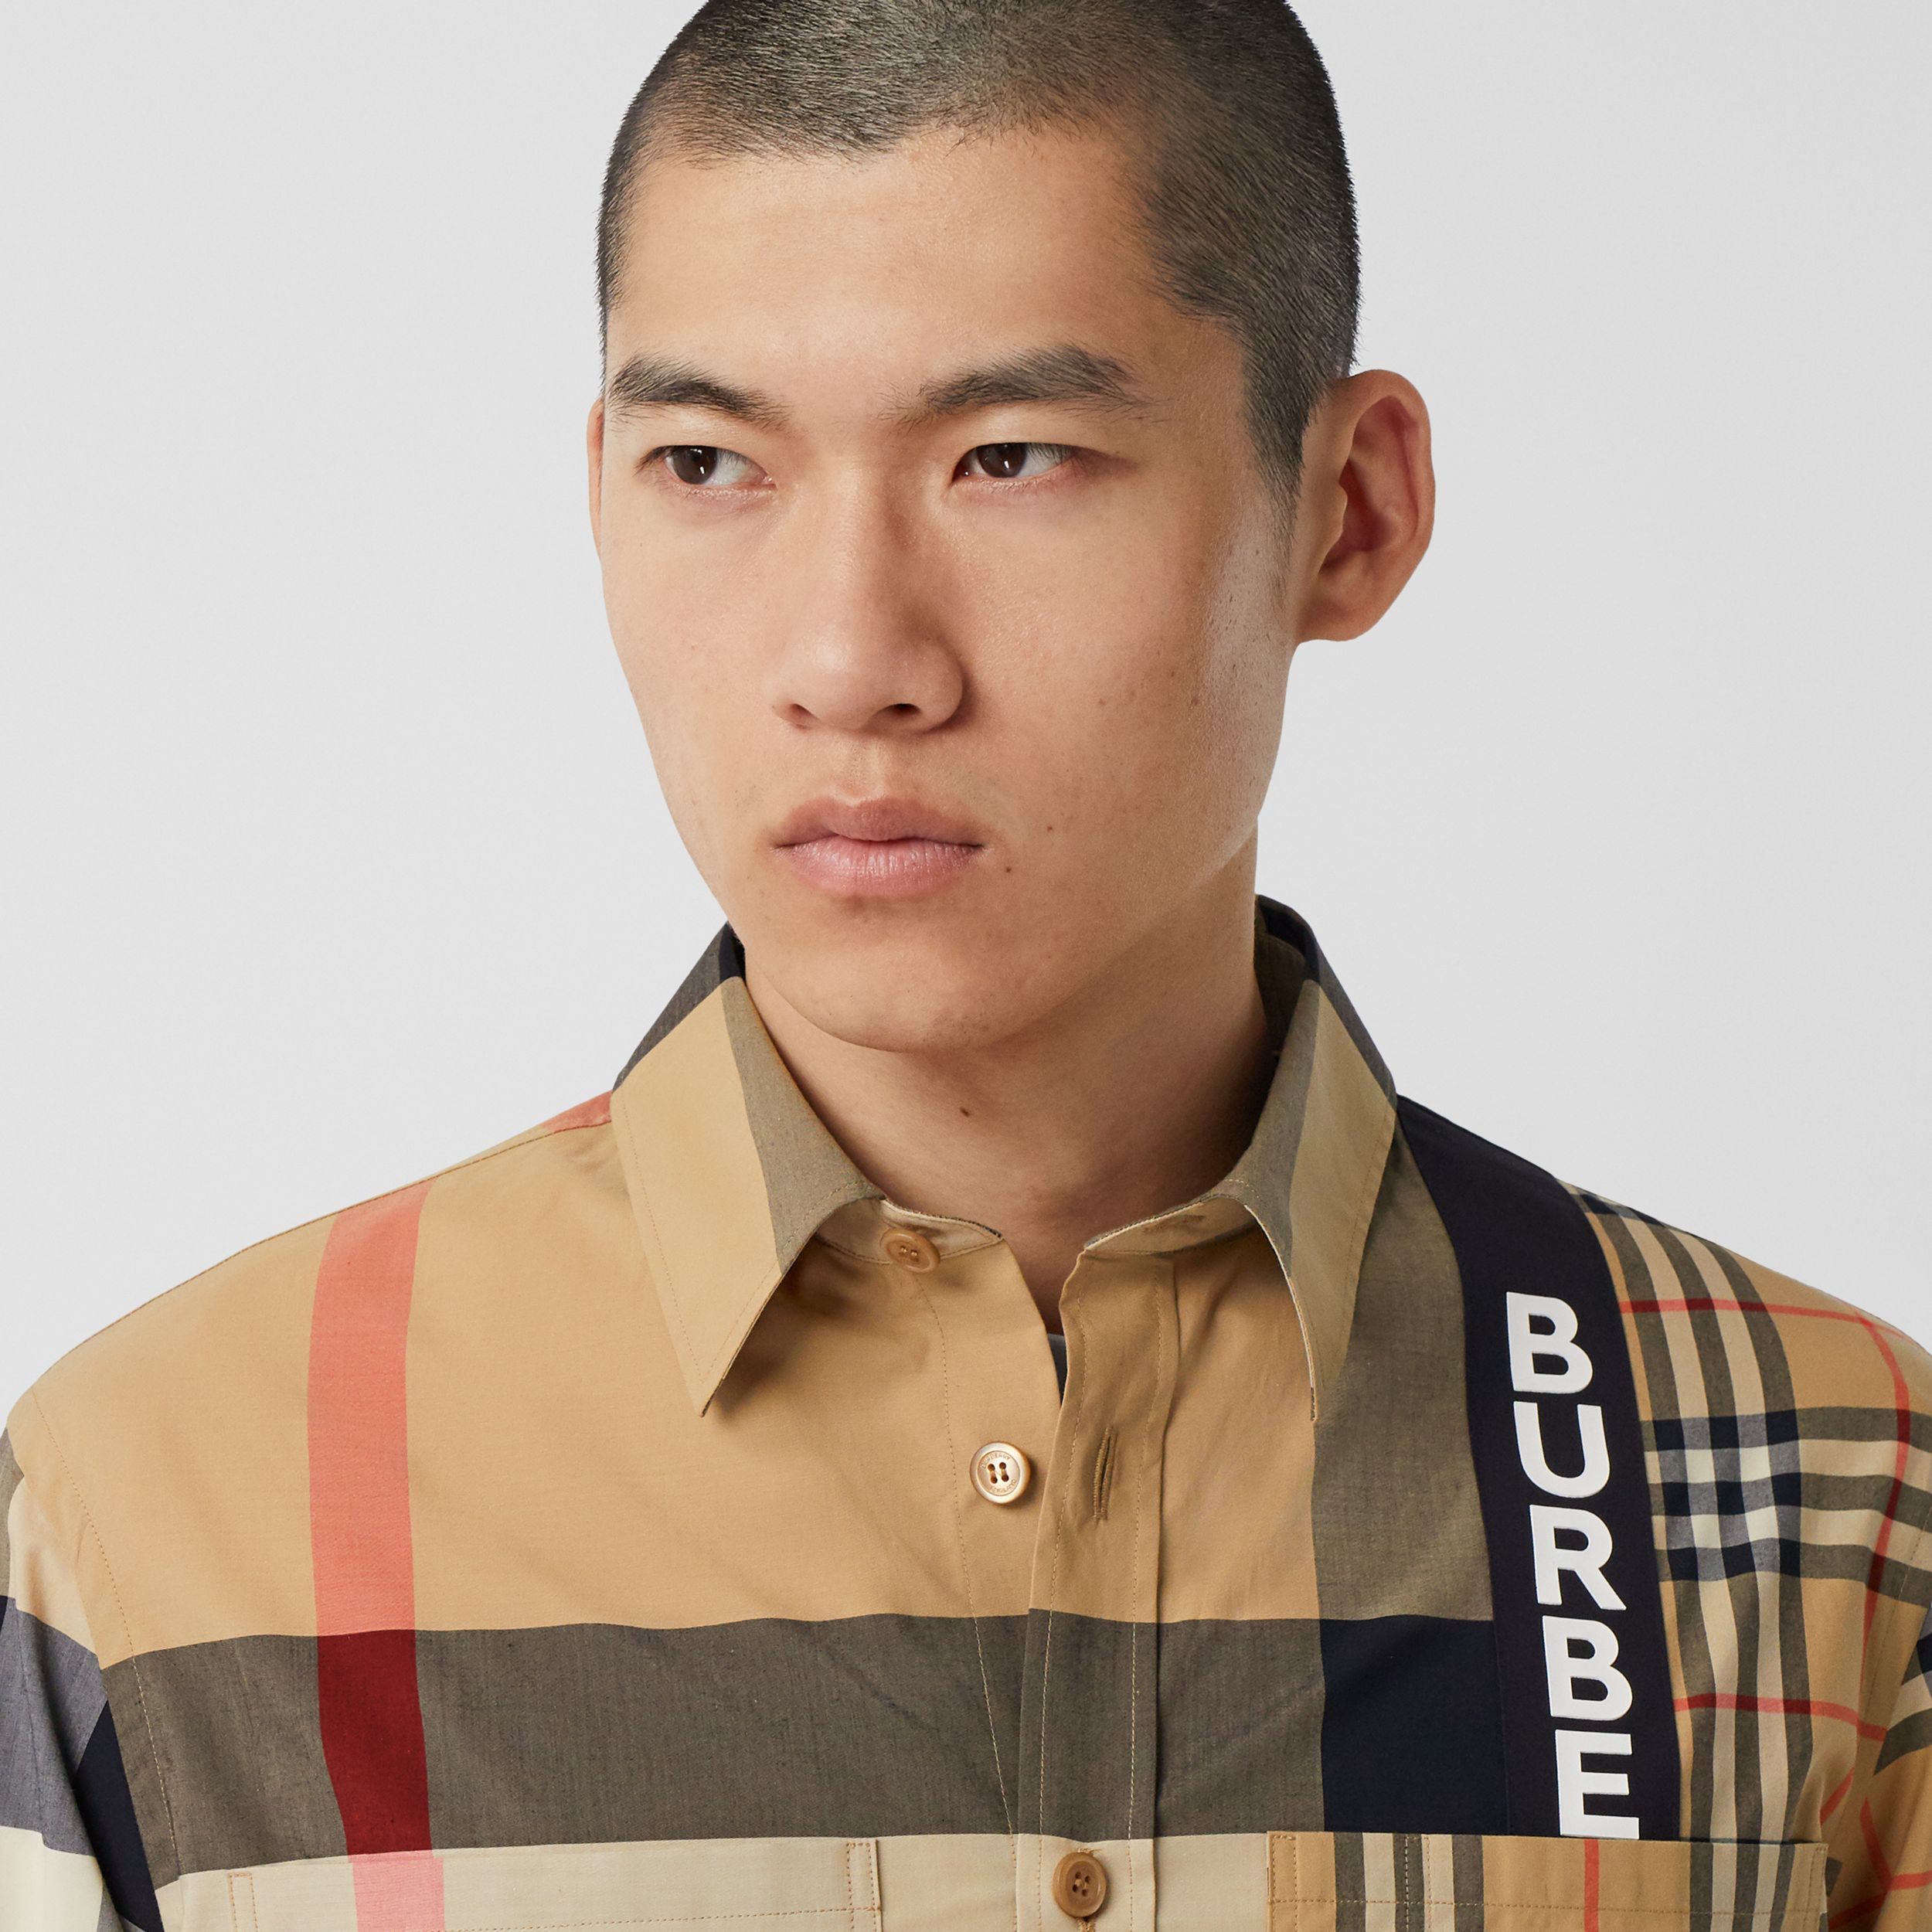 Logo Print Patchwork Check Cotton Oversized Shirt in Archive Beige - Men | Burberry - 2